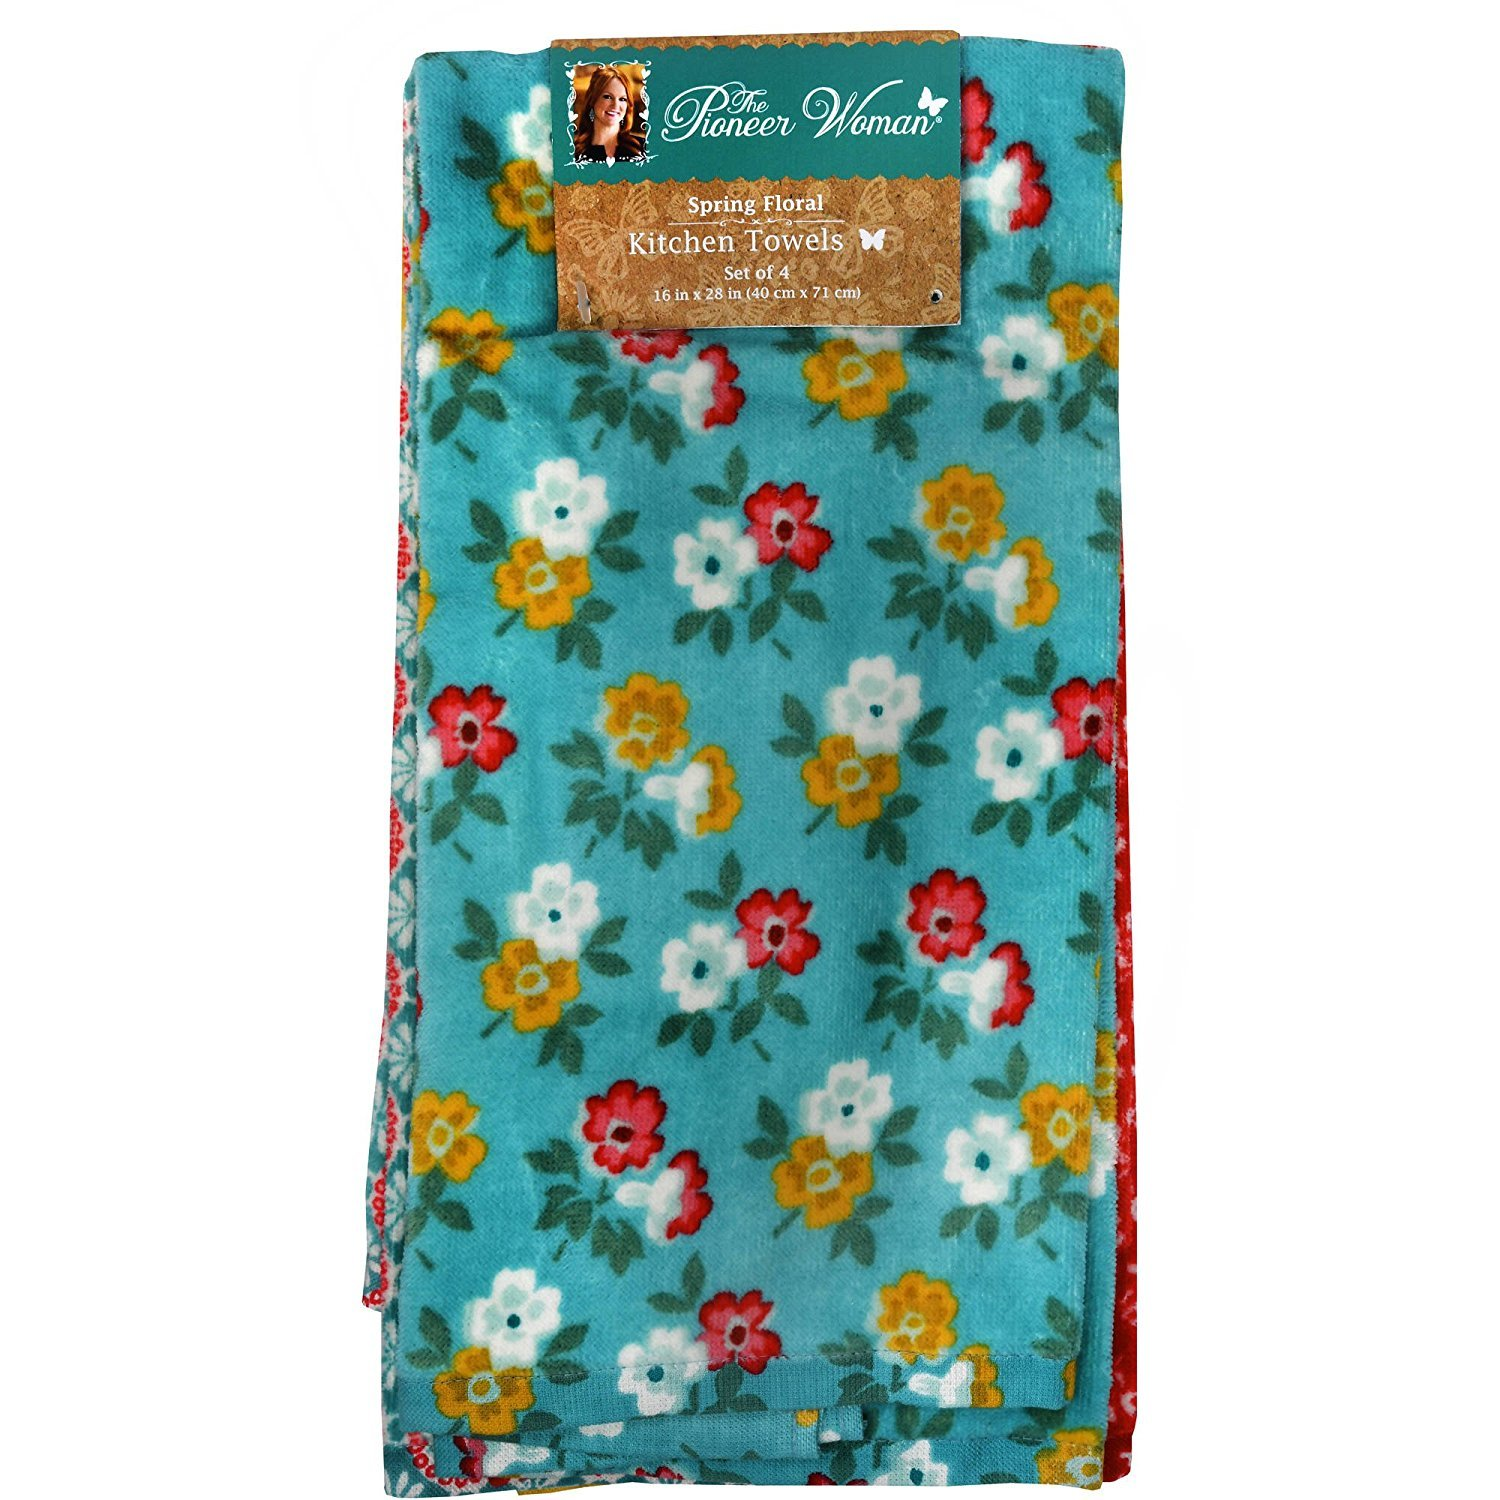 Amazon.com: The Pioneer Woman Spring Floral Kitchen Towel Set, 4pk ...